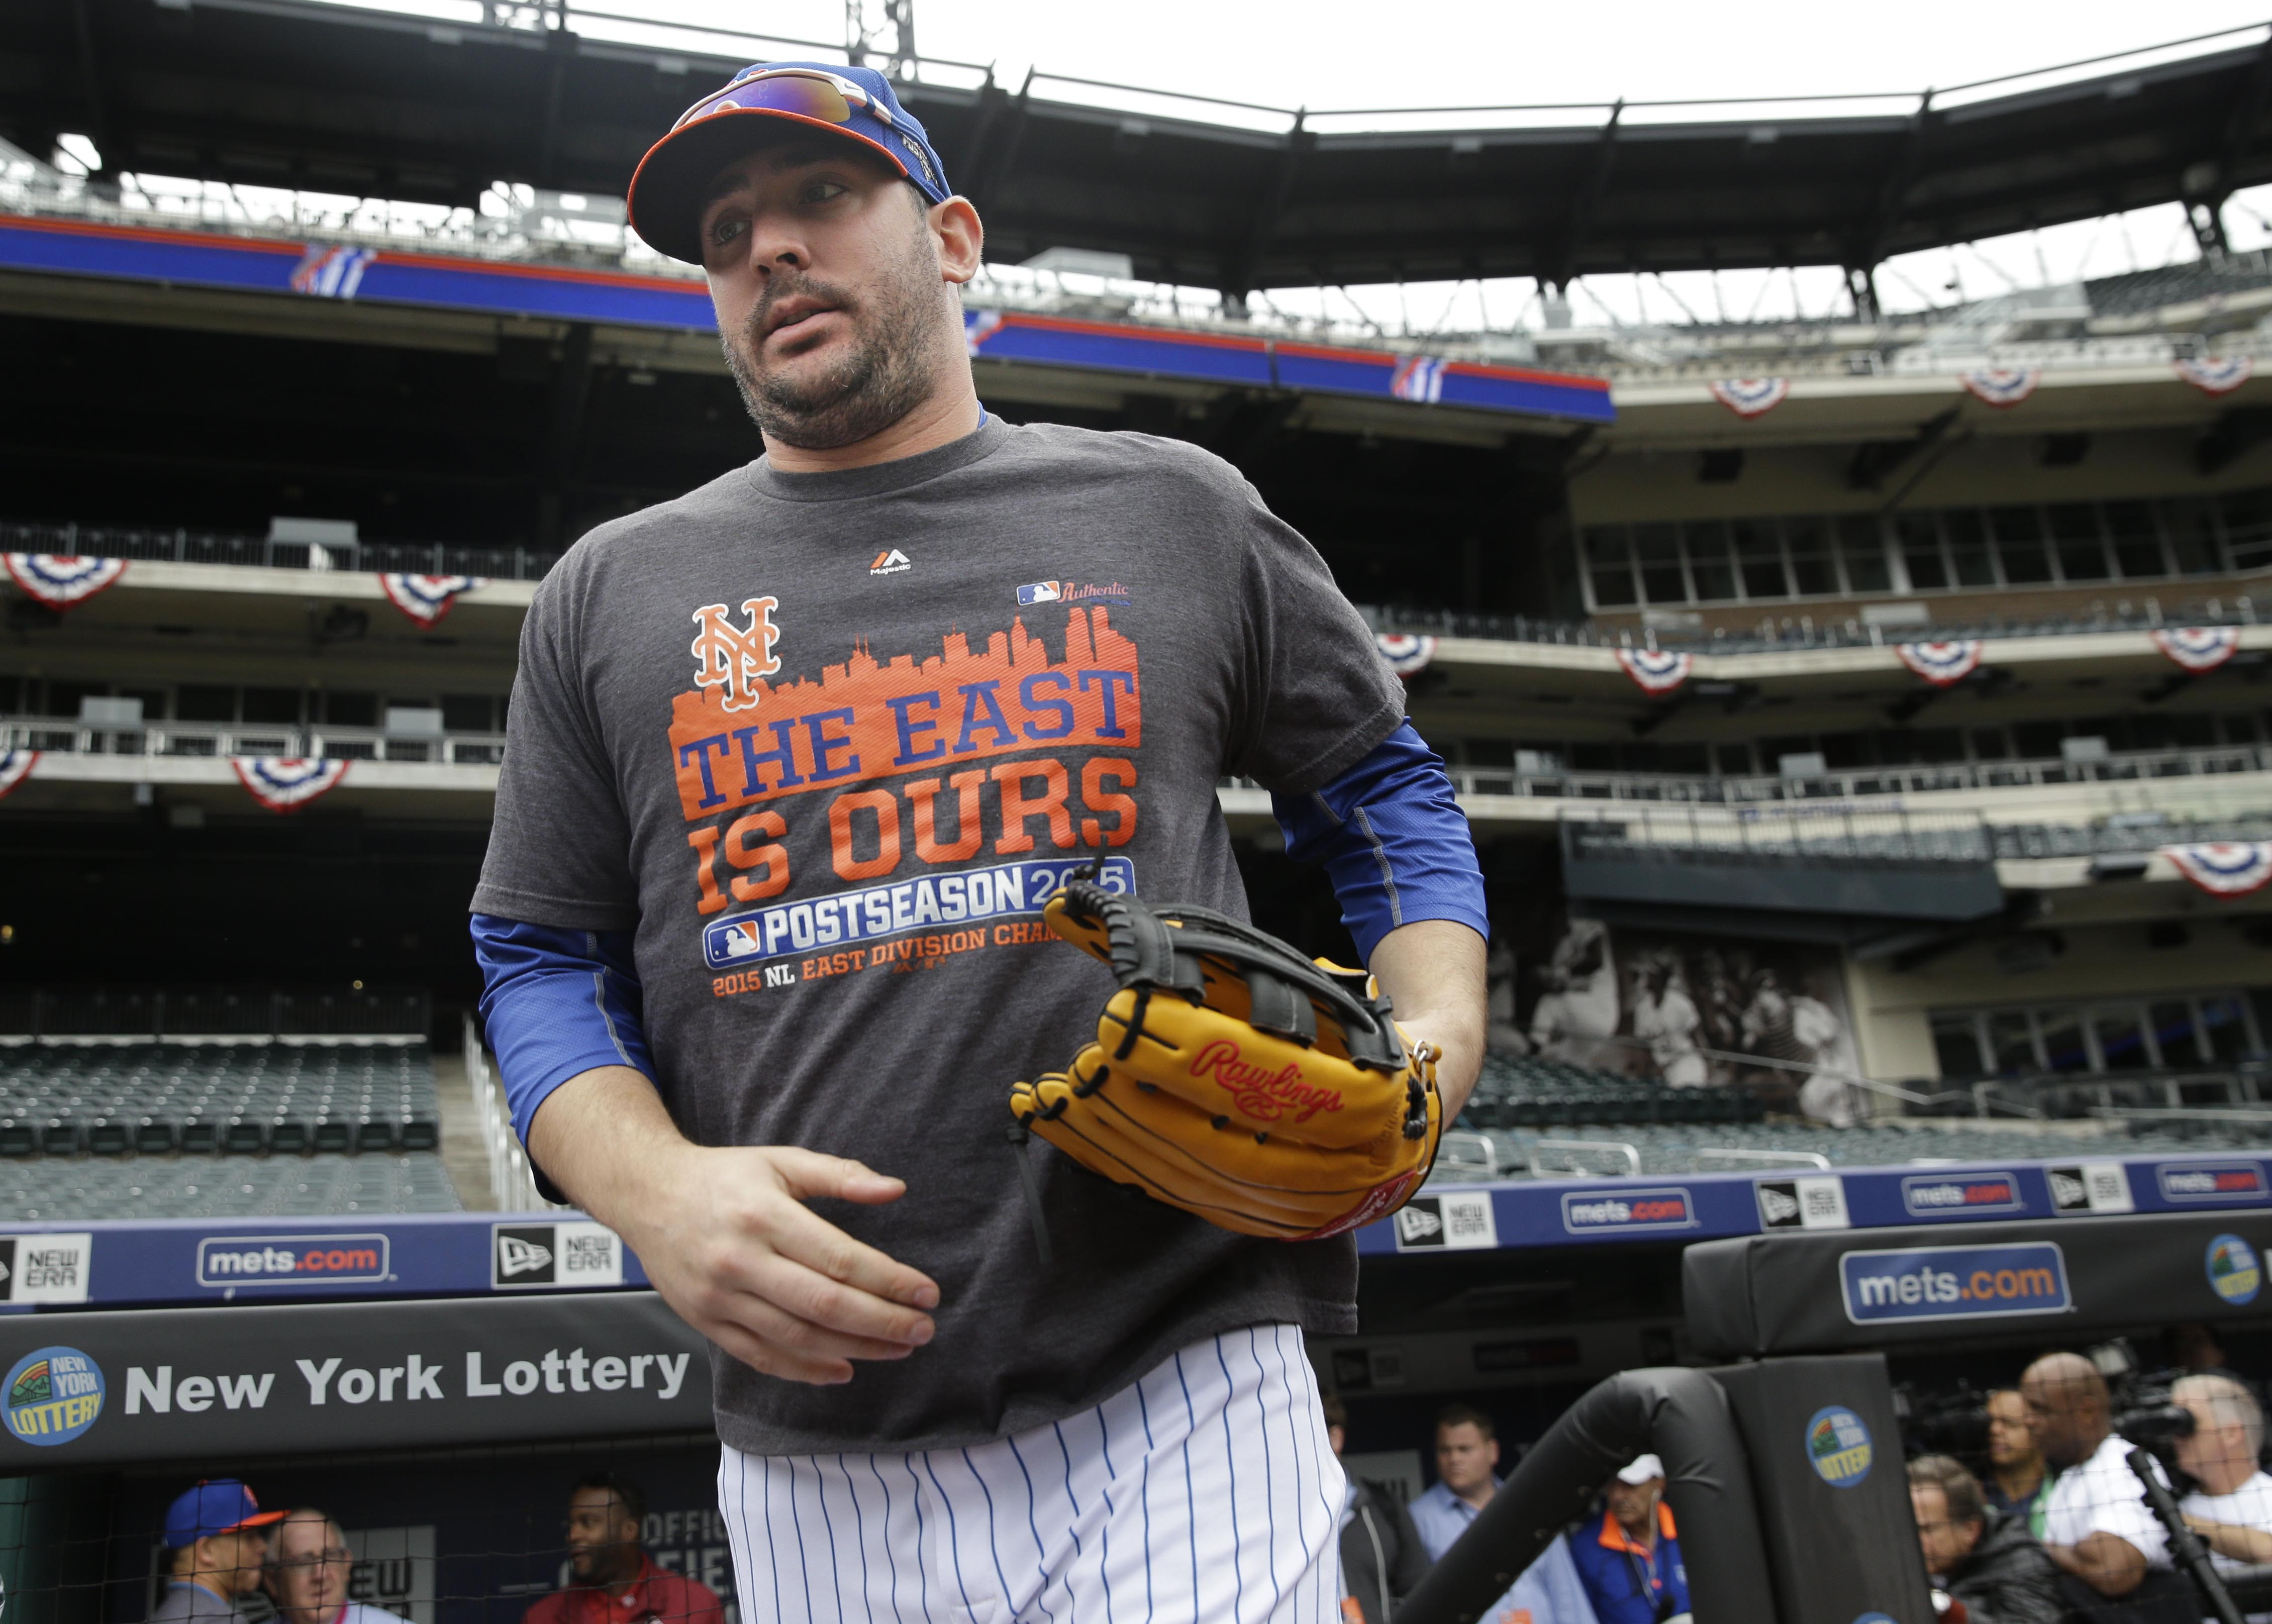 New York Mets' pitcher Matt Harvey runs out onto the field before a workout at Citi Field, Wednesday, Oct. 7, 2015 in New York. The Mets will play the Los Angeles Dodgers in a National League Division Series starting Friday in Los Angeles. (AP Photo/Seth